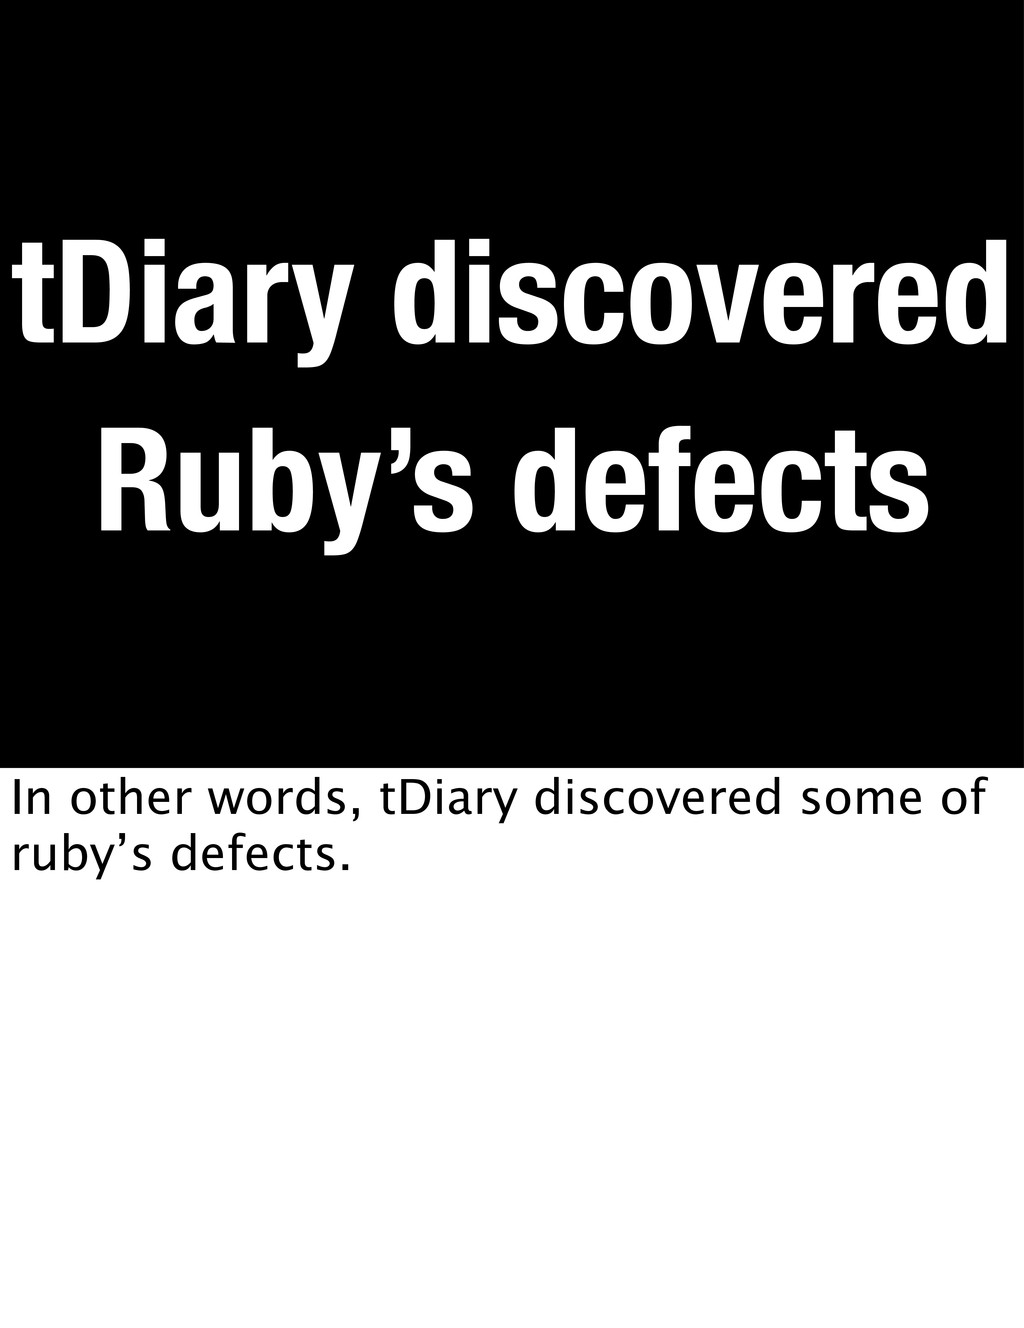 tDiary discovered Ruby's defects In other words...